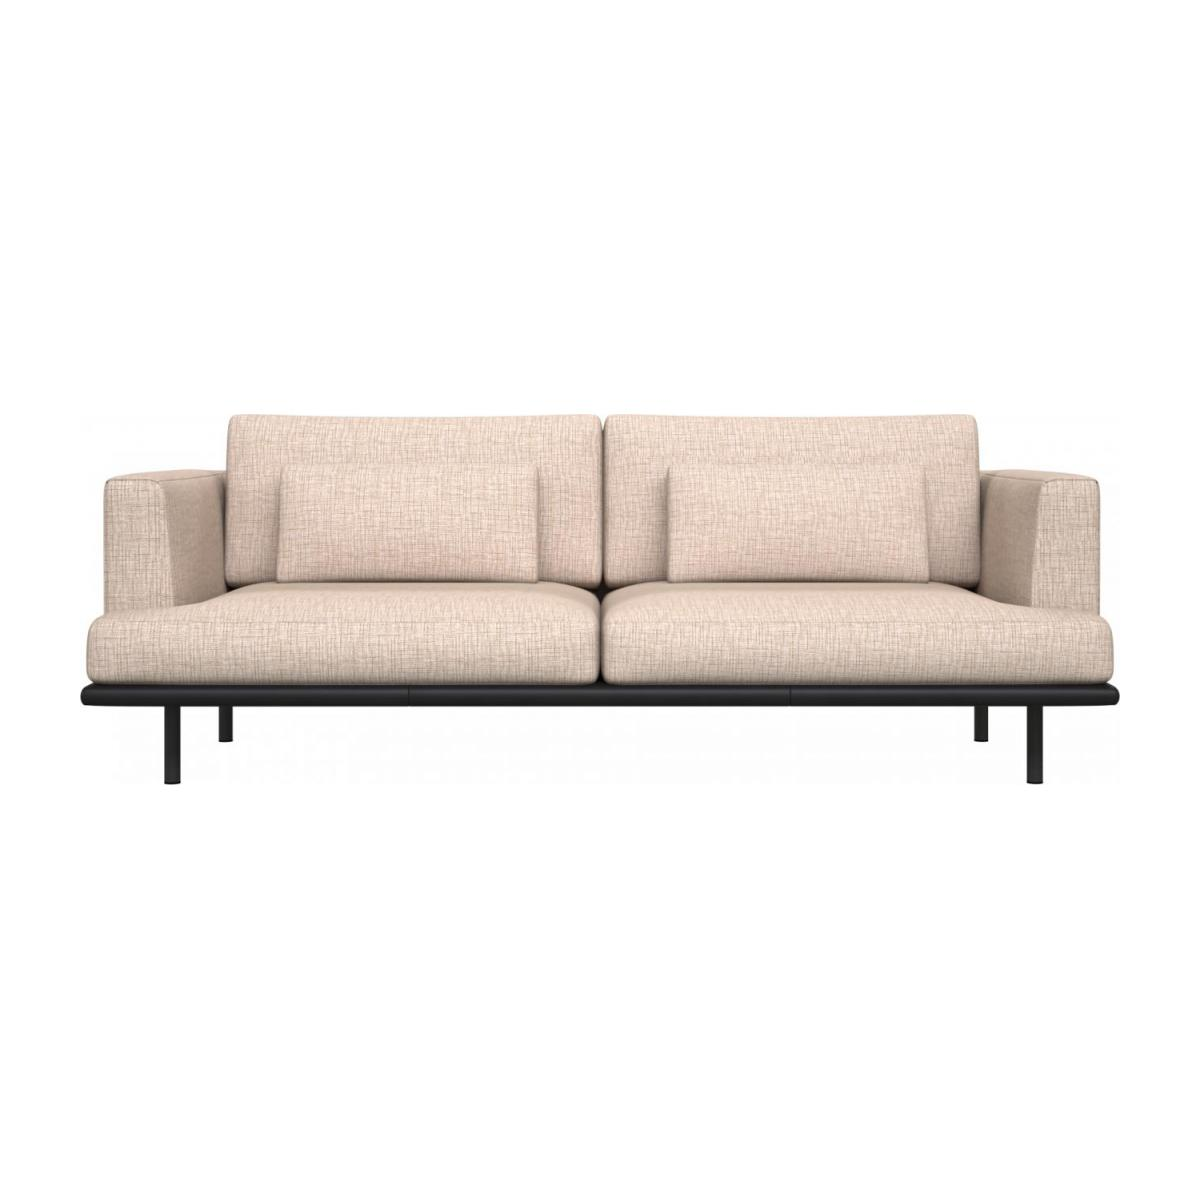 3 seater sofa in Ancio fabric, nature with base in black leather n°2